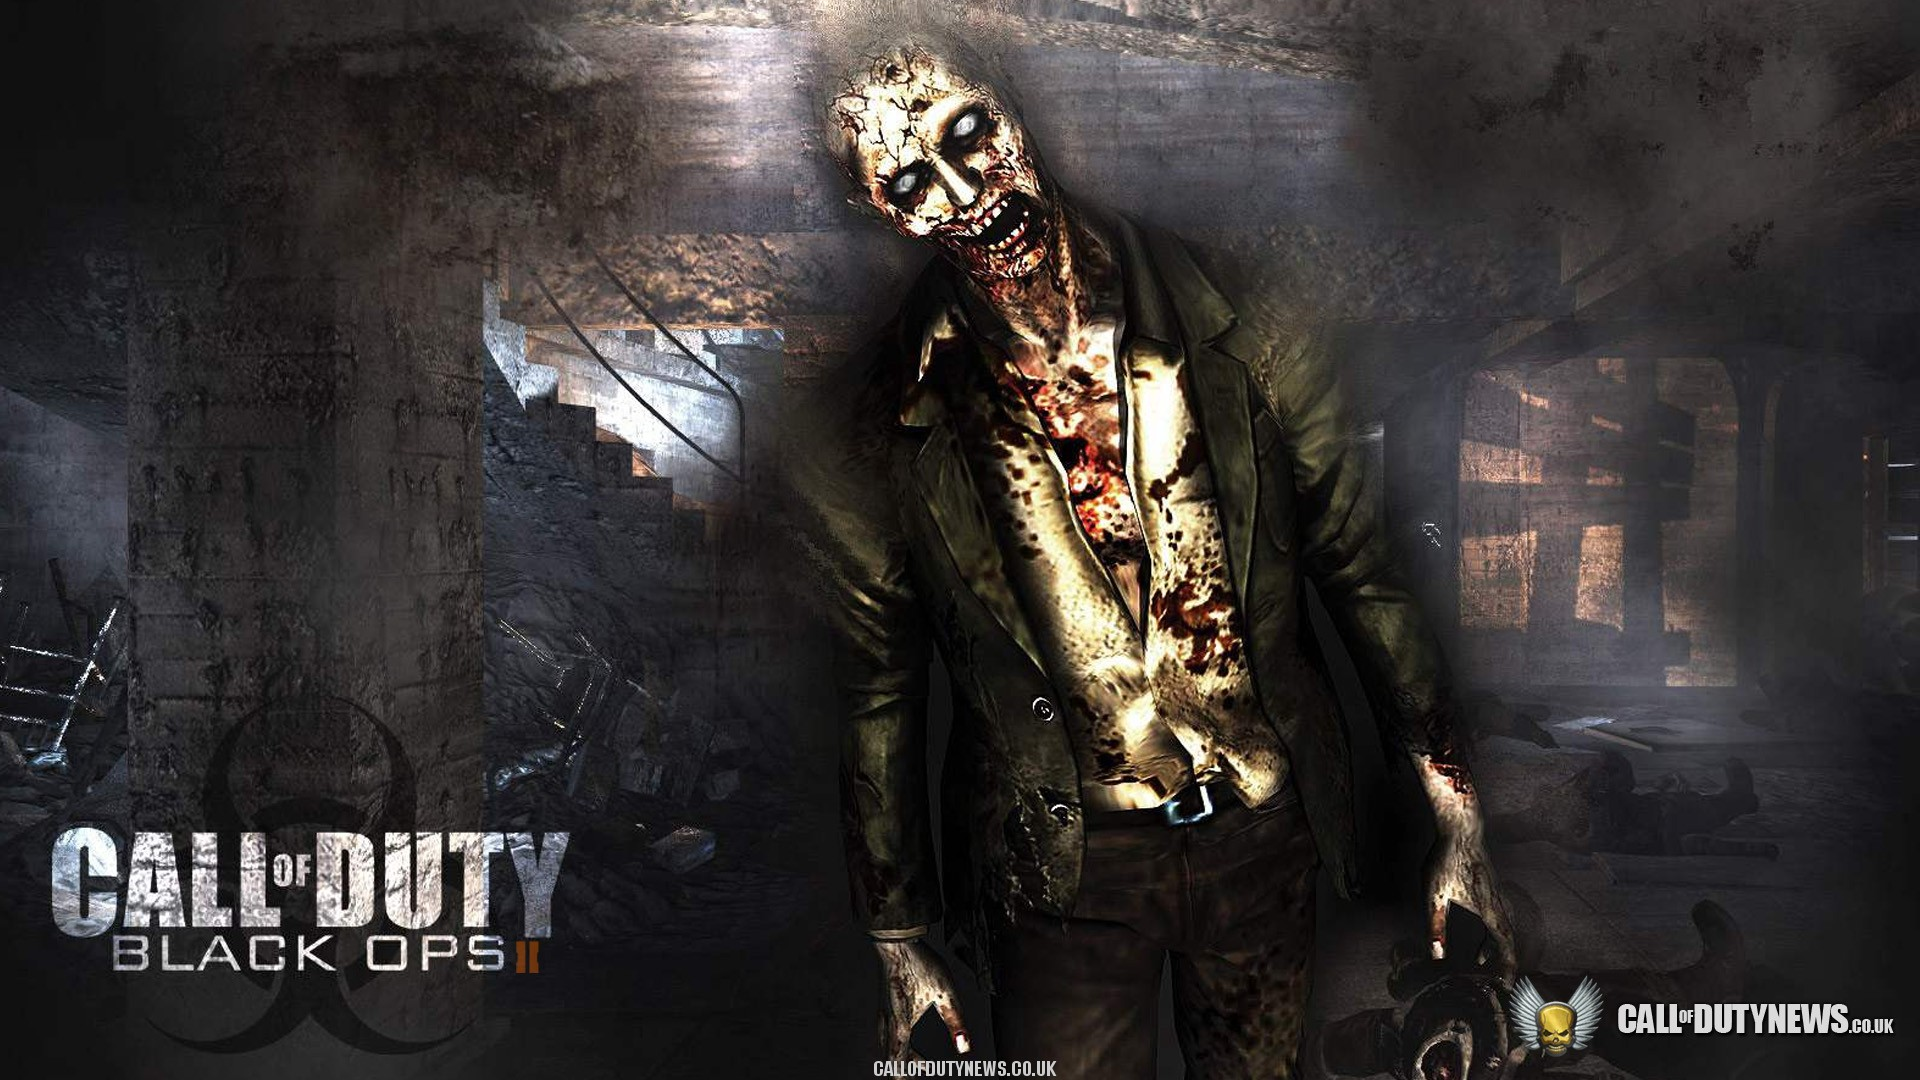 Free Download Black Ops 2 Wallpaper 71 Zombie Call Of Duty